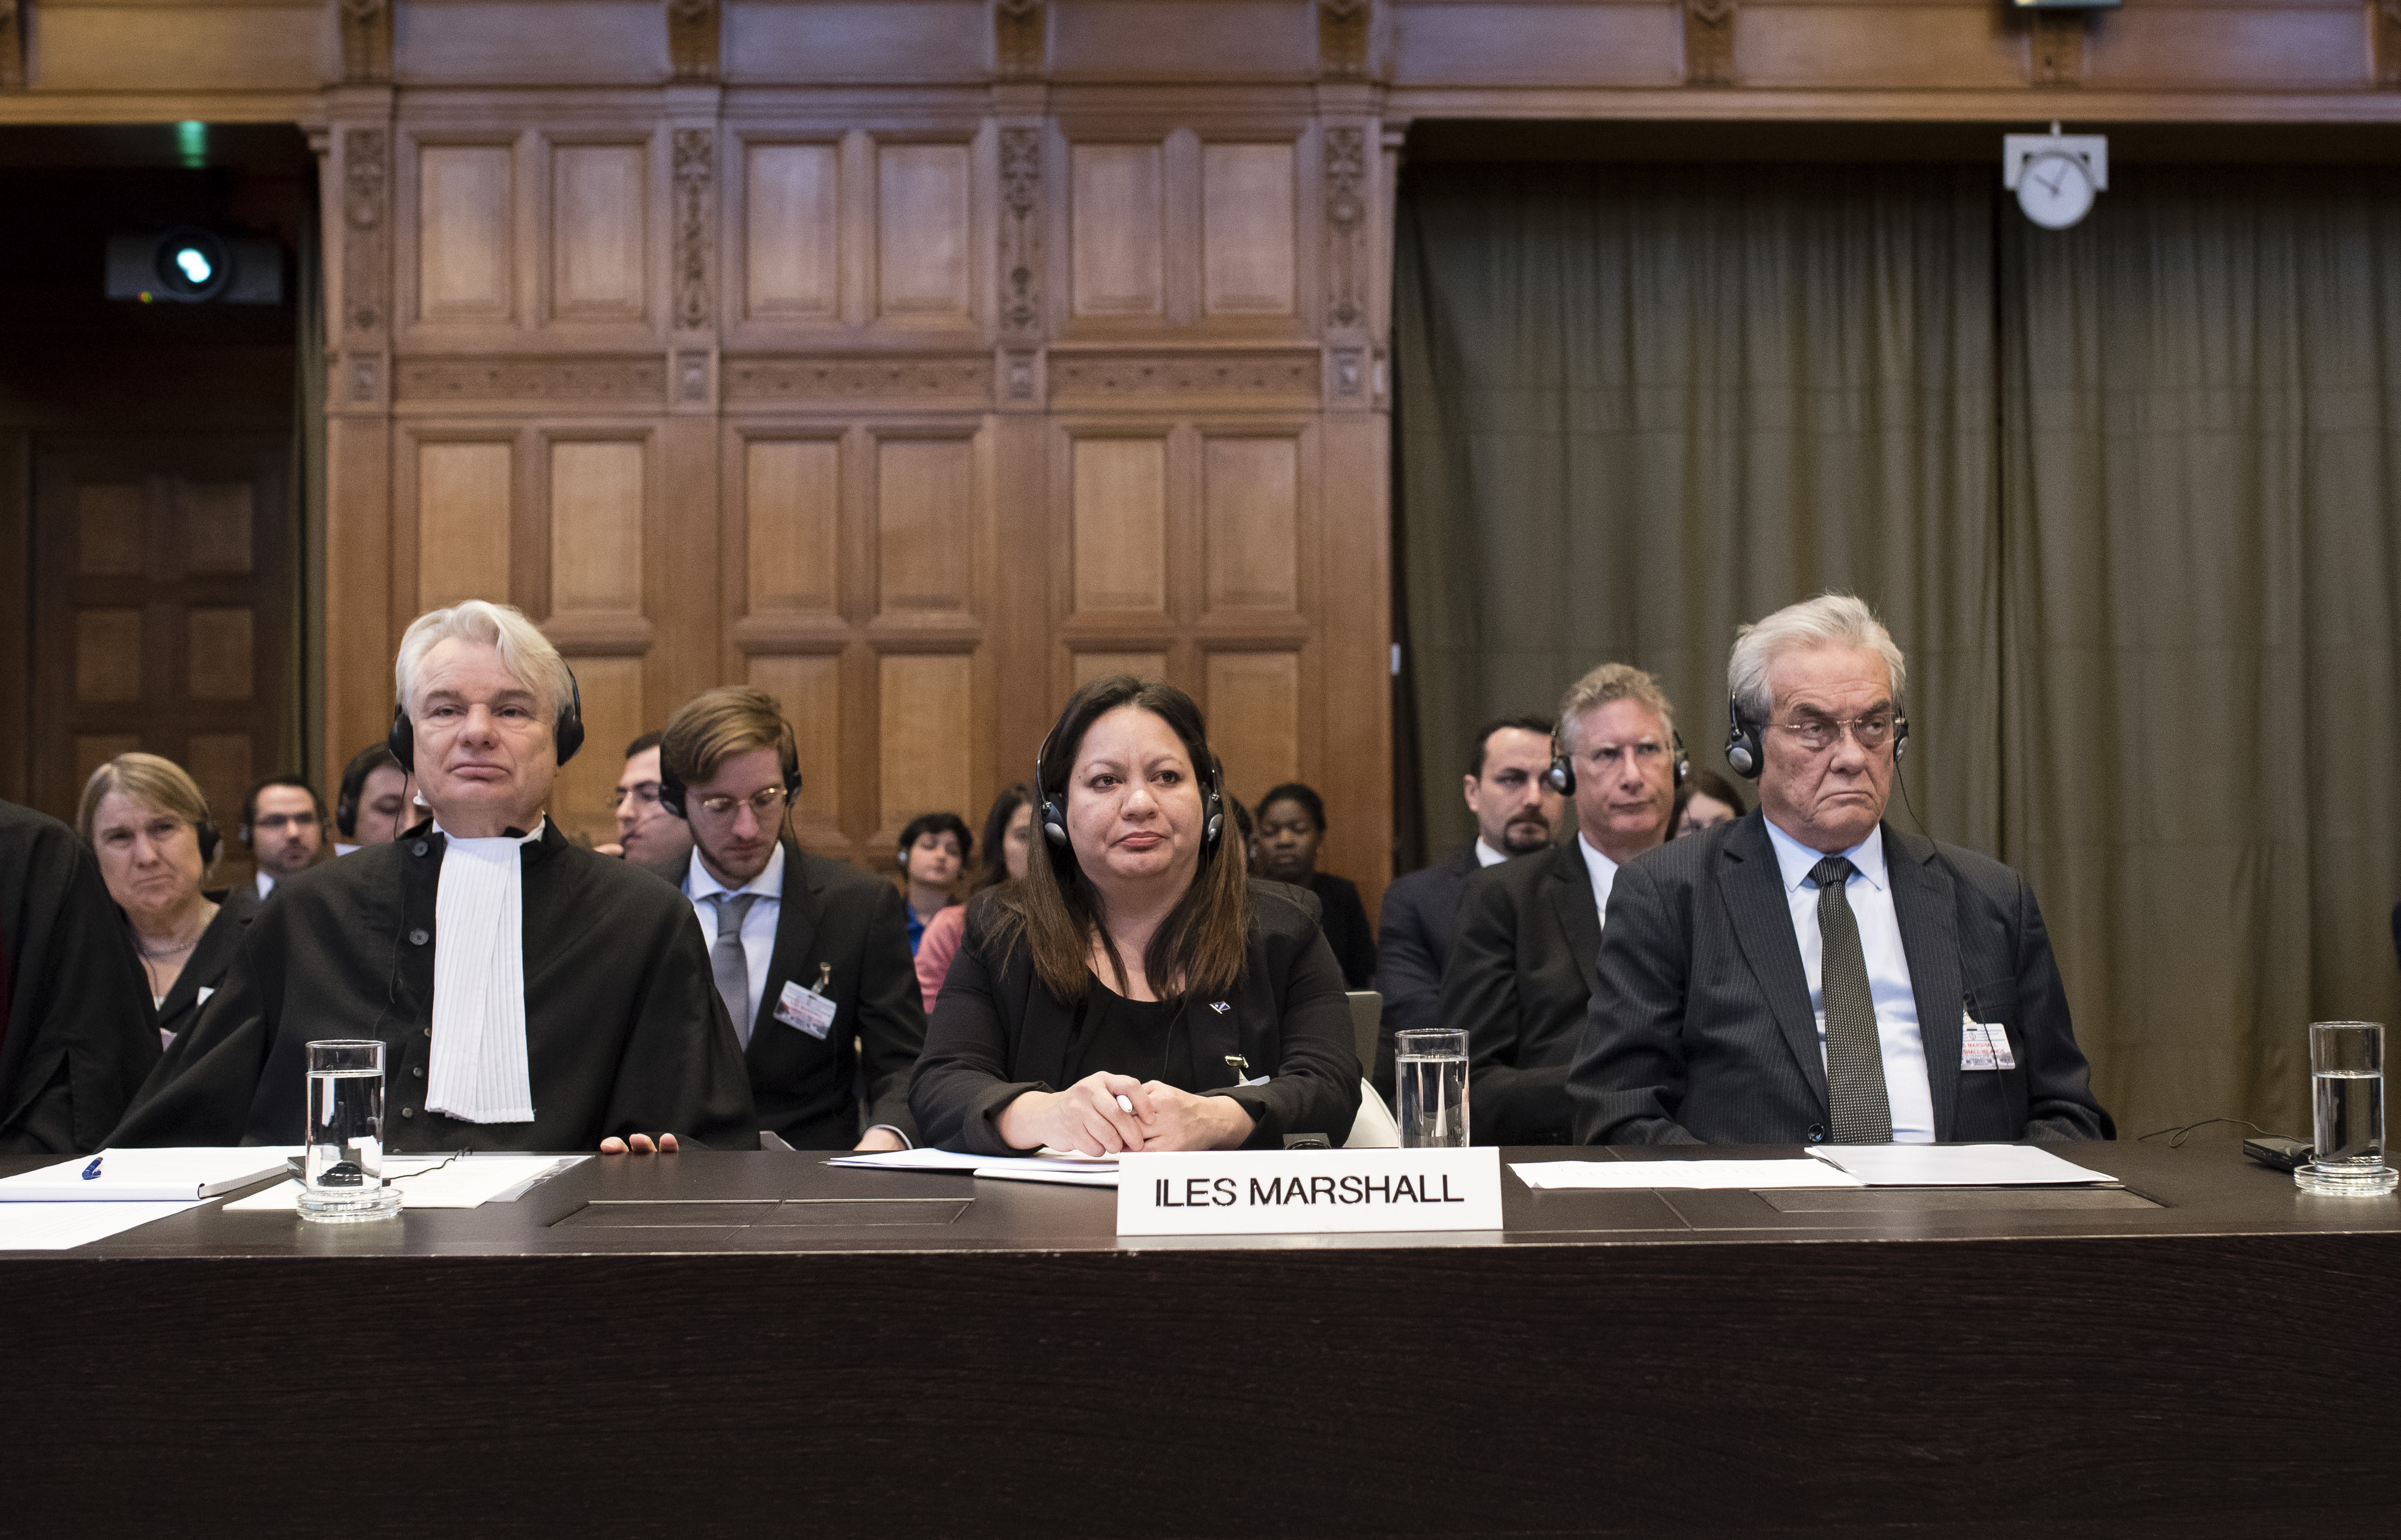 The International Court of Justice (ICJ, principal judicial organ of the UN), holds hearings from 7-16 March 2016 in three distinct cases filed by the Republic of the Marshall Islands against India, Pakistan and the United Kingdom, with regard to Obligations concerning Negotiations relating to Cessation of the Nuclear Arms Race and to Nuclear Disarmament (hearings on preliminary arguments exclusively).